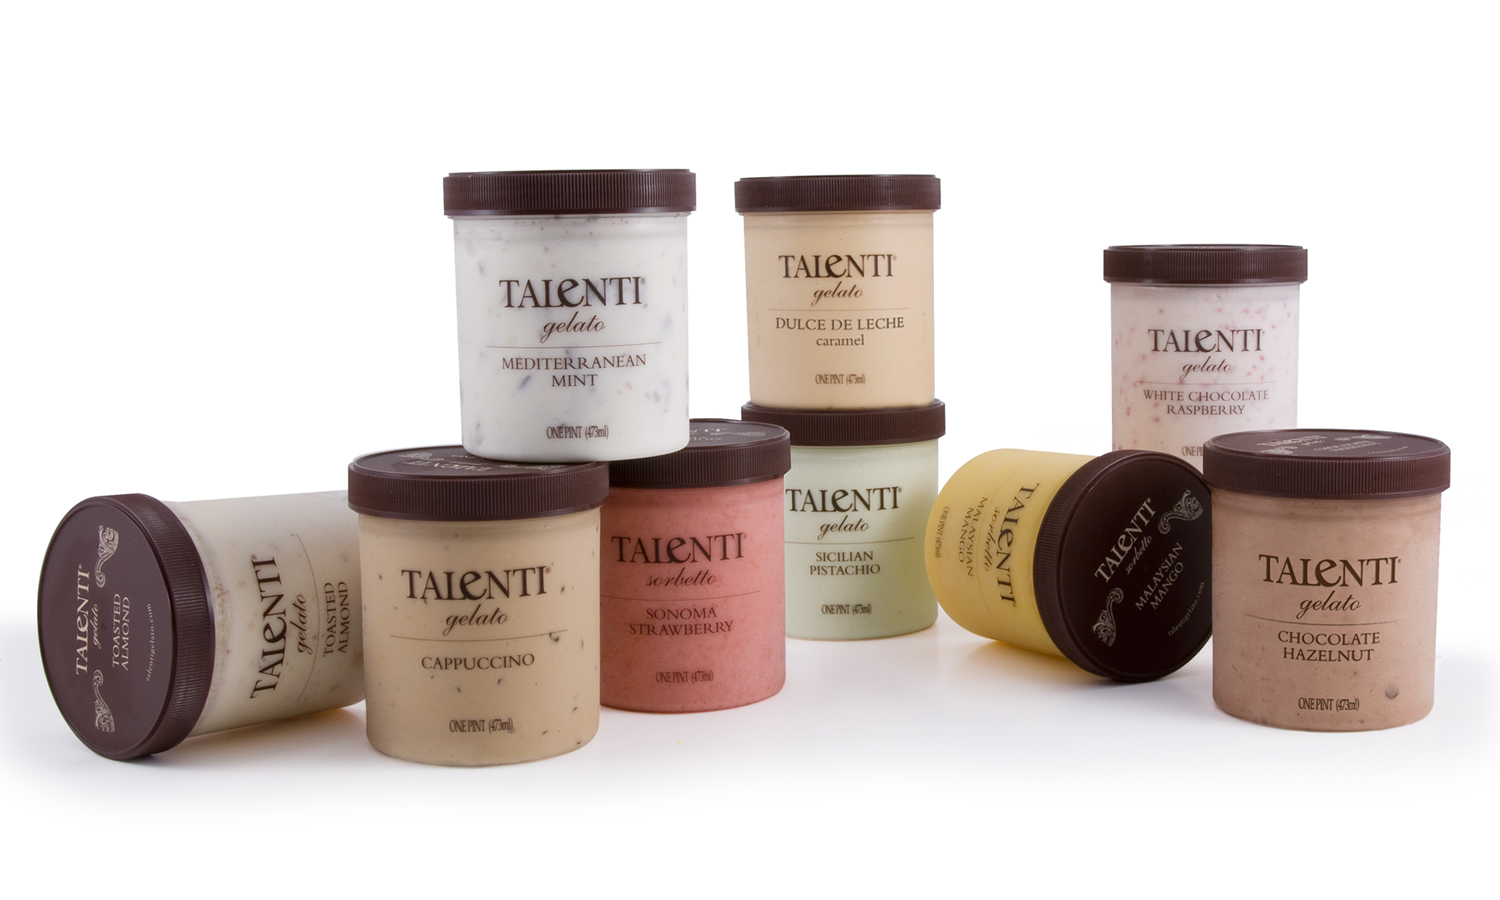 Talenti Gelato Makes Going to the Grocery Store Worthwhile